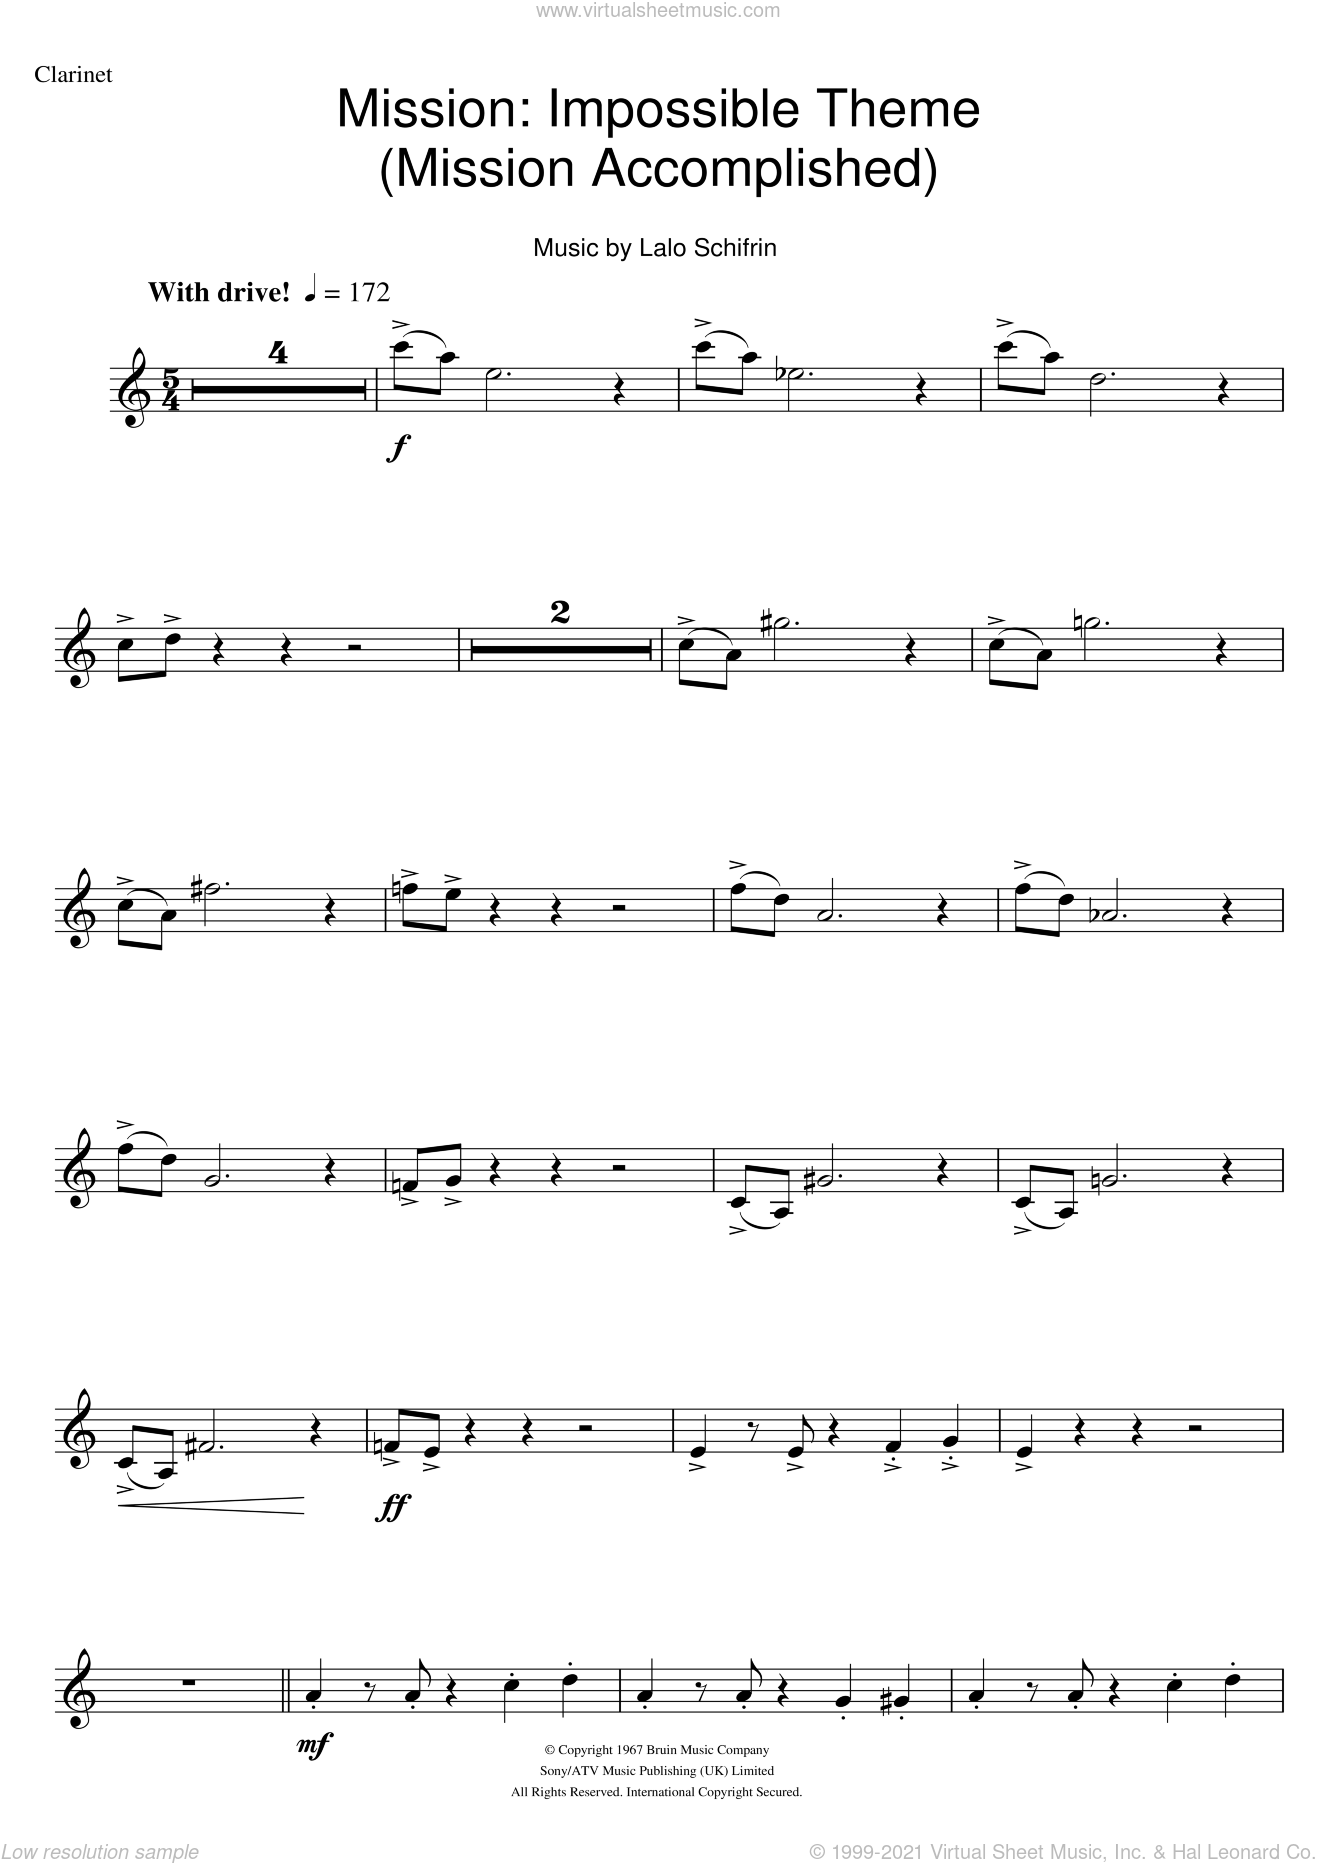 Mission: Impossible Theme (Mission Accomplished) sheet music for clarinet solo by Lalo Schifrin. Score Image Preview.